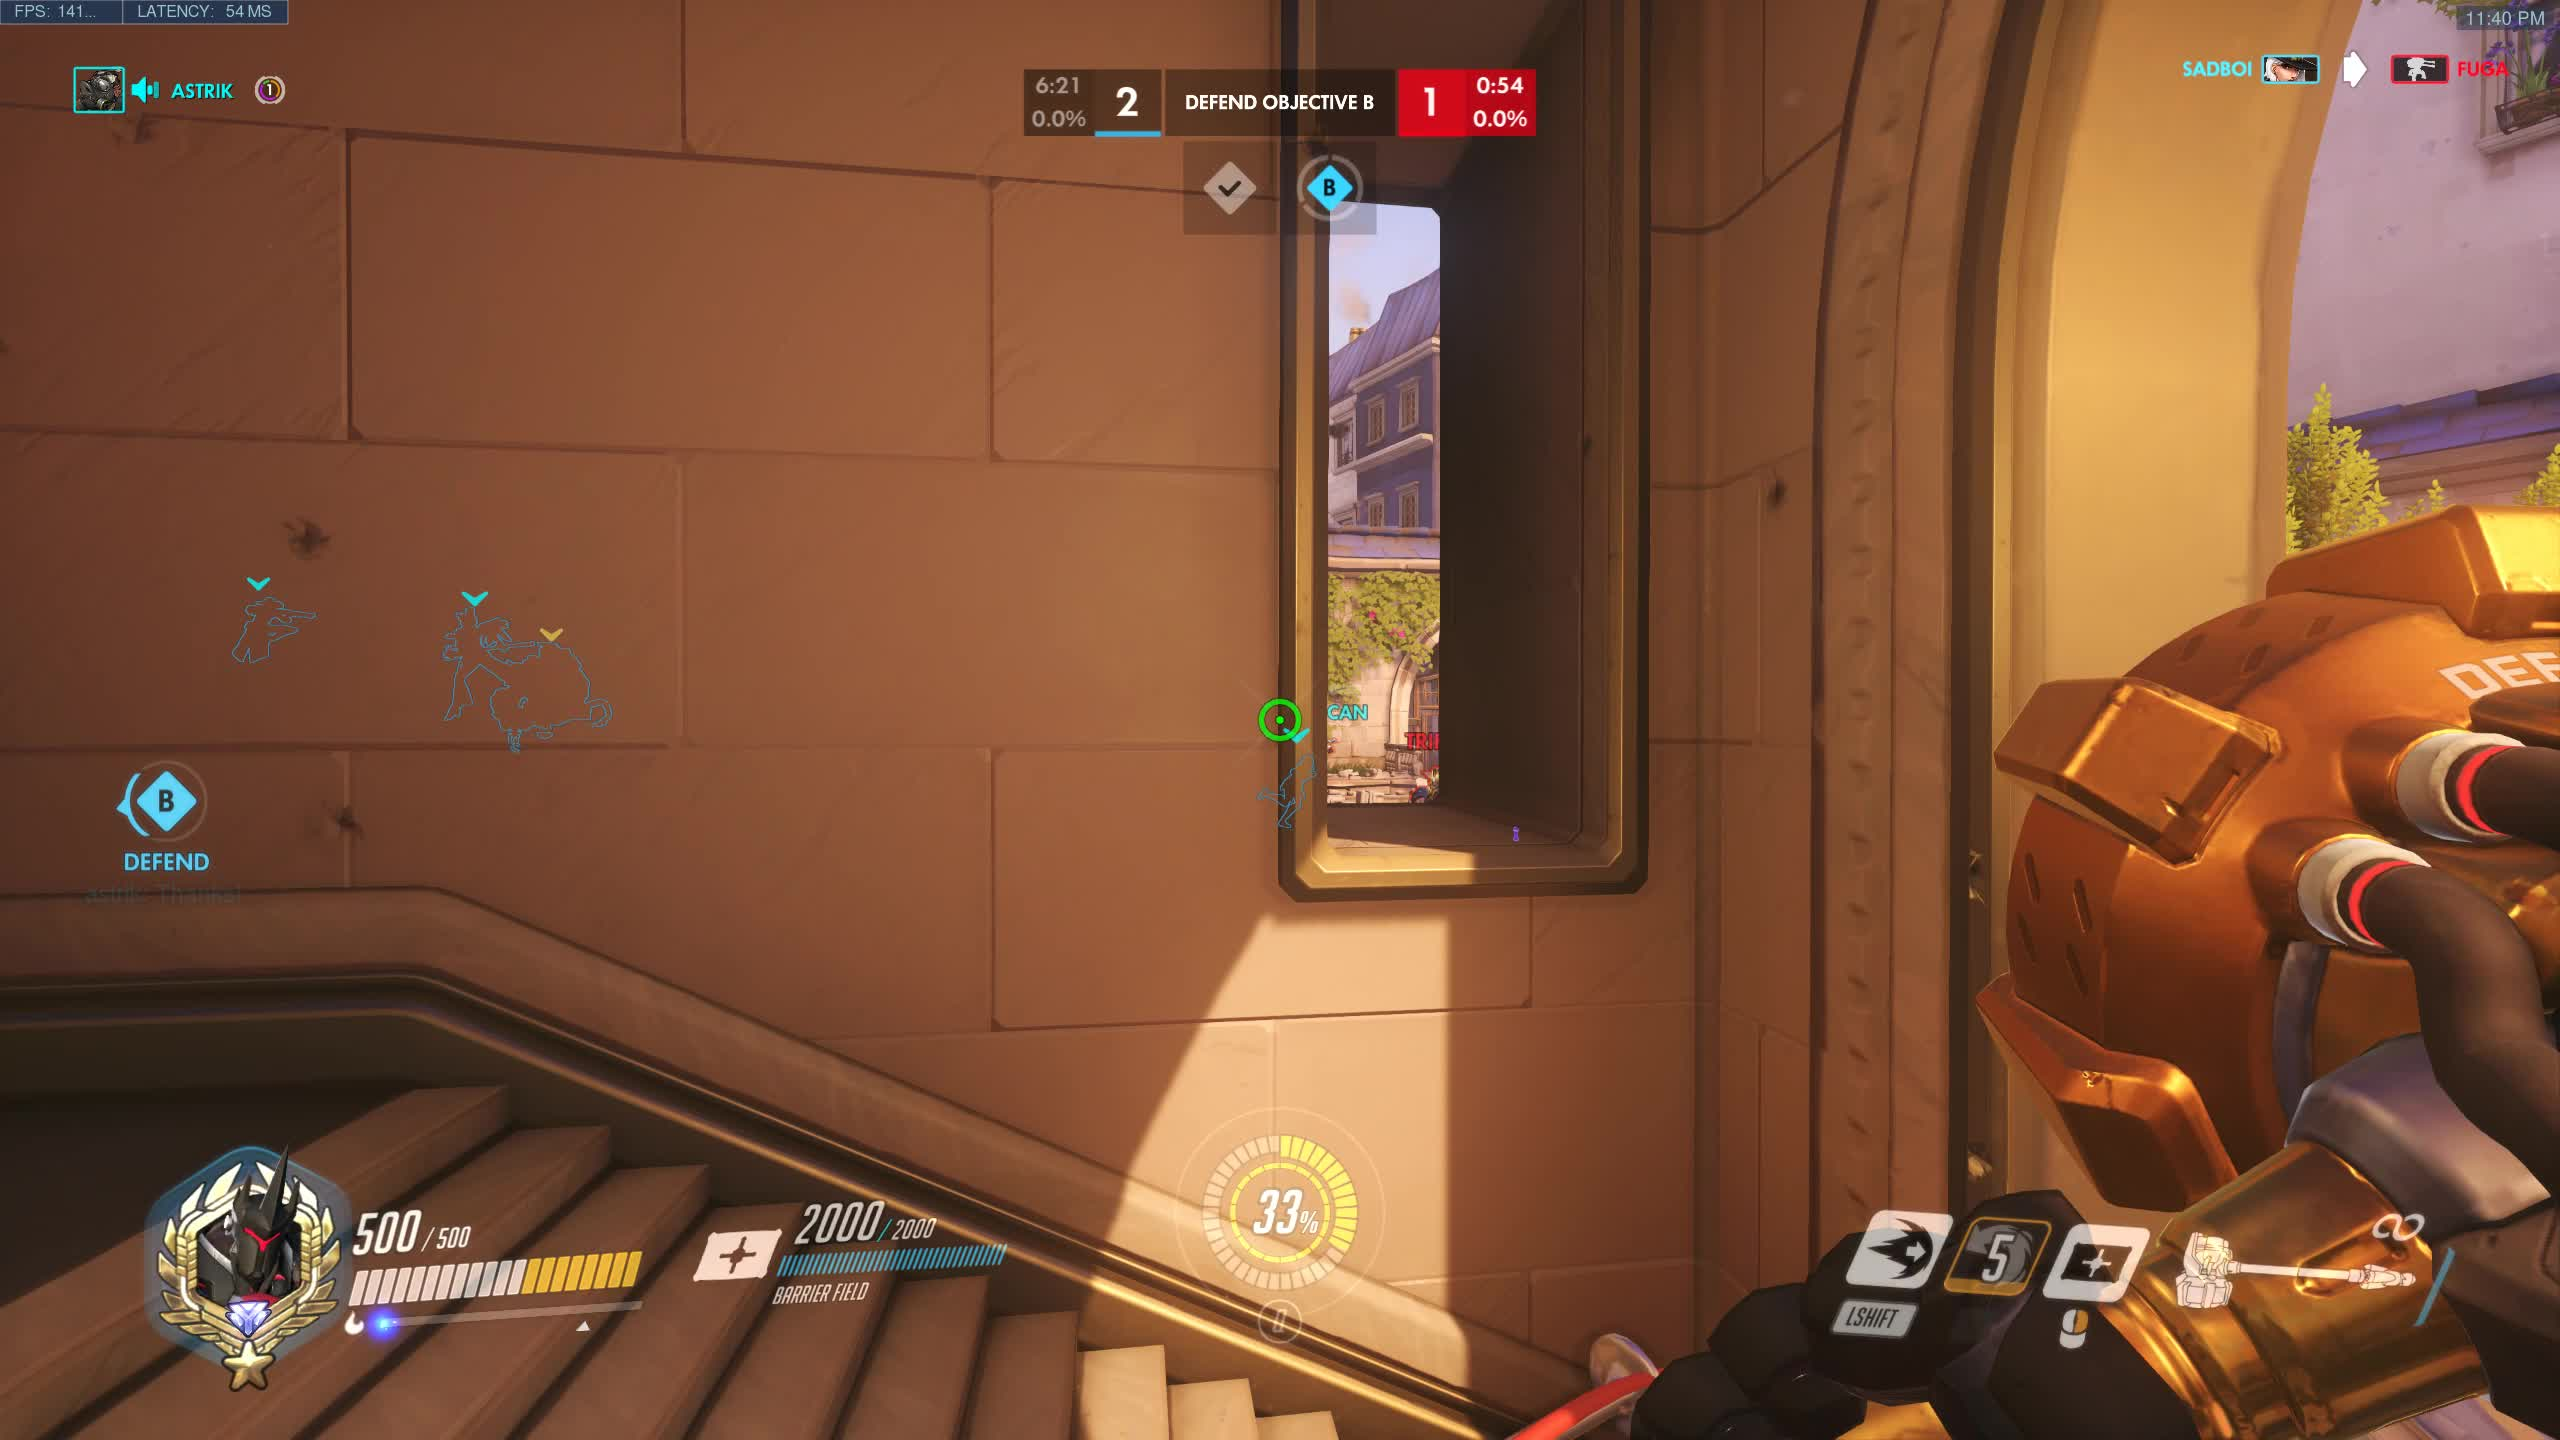 baited, blizzard, comp, competitive, funny, game, games, gif, internet, jeff, jokes, laugh, lol, mcree, meme, overwatch, ow, reinhard, video, xd, ja-baited 101 GIFs